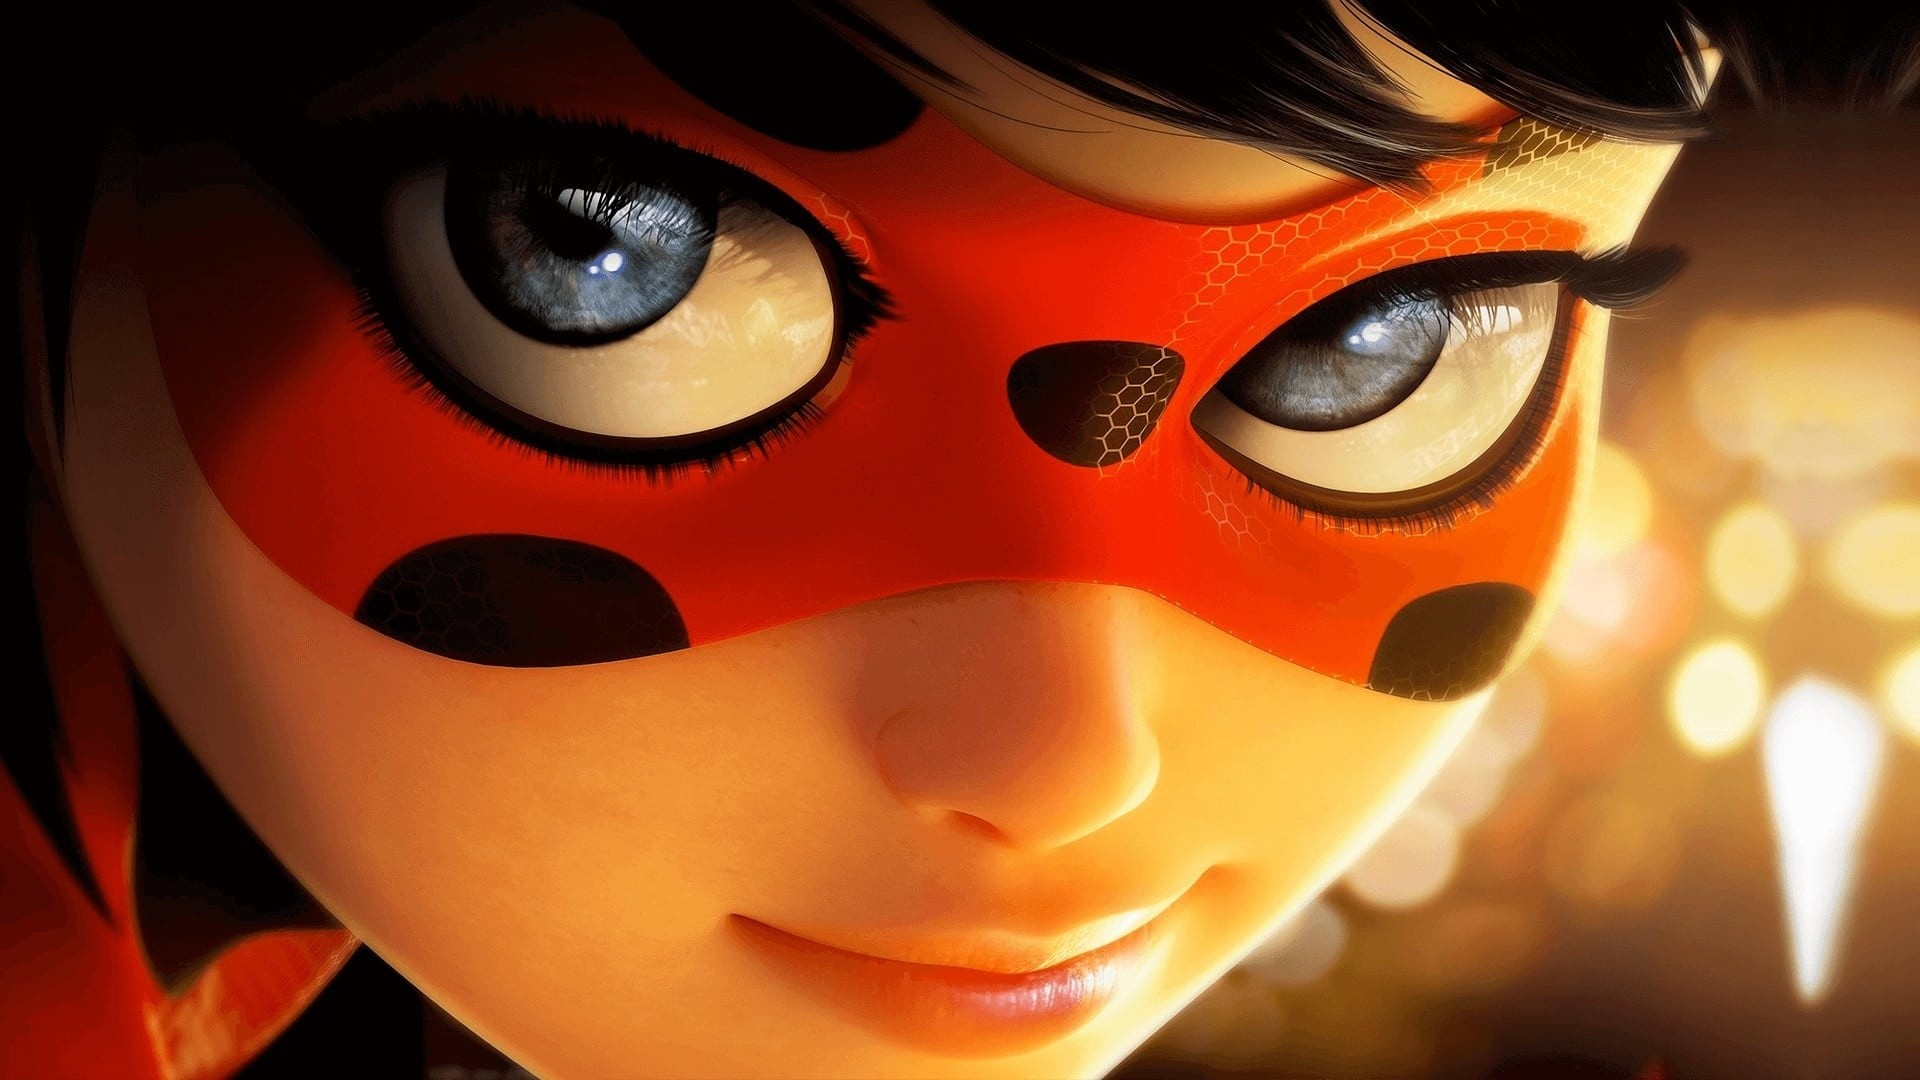 Miraculous Ladybug HD Download